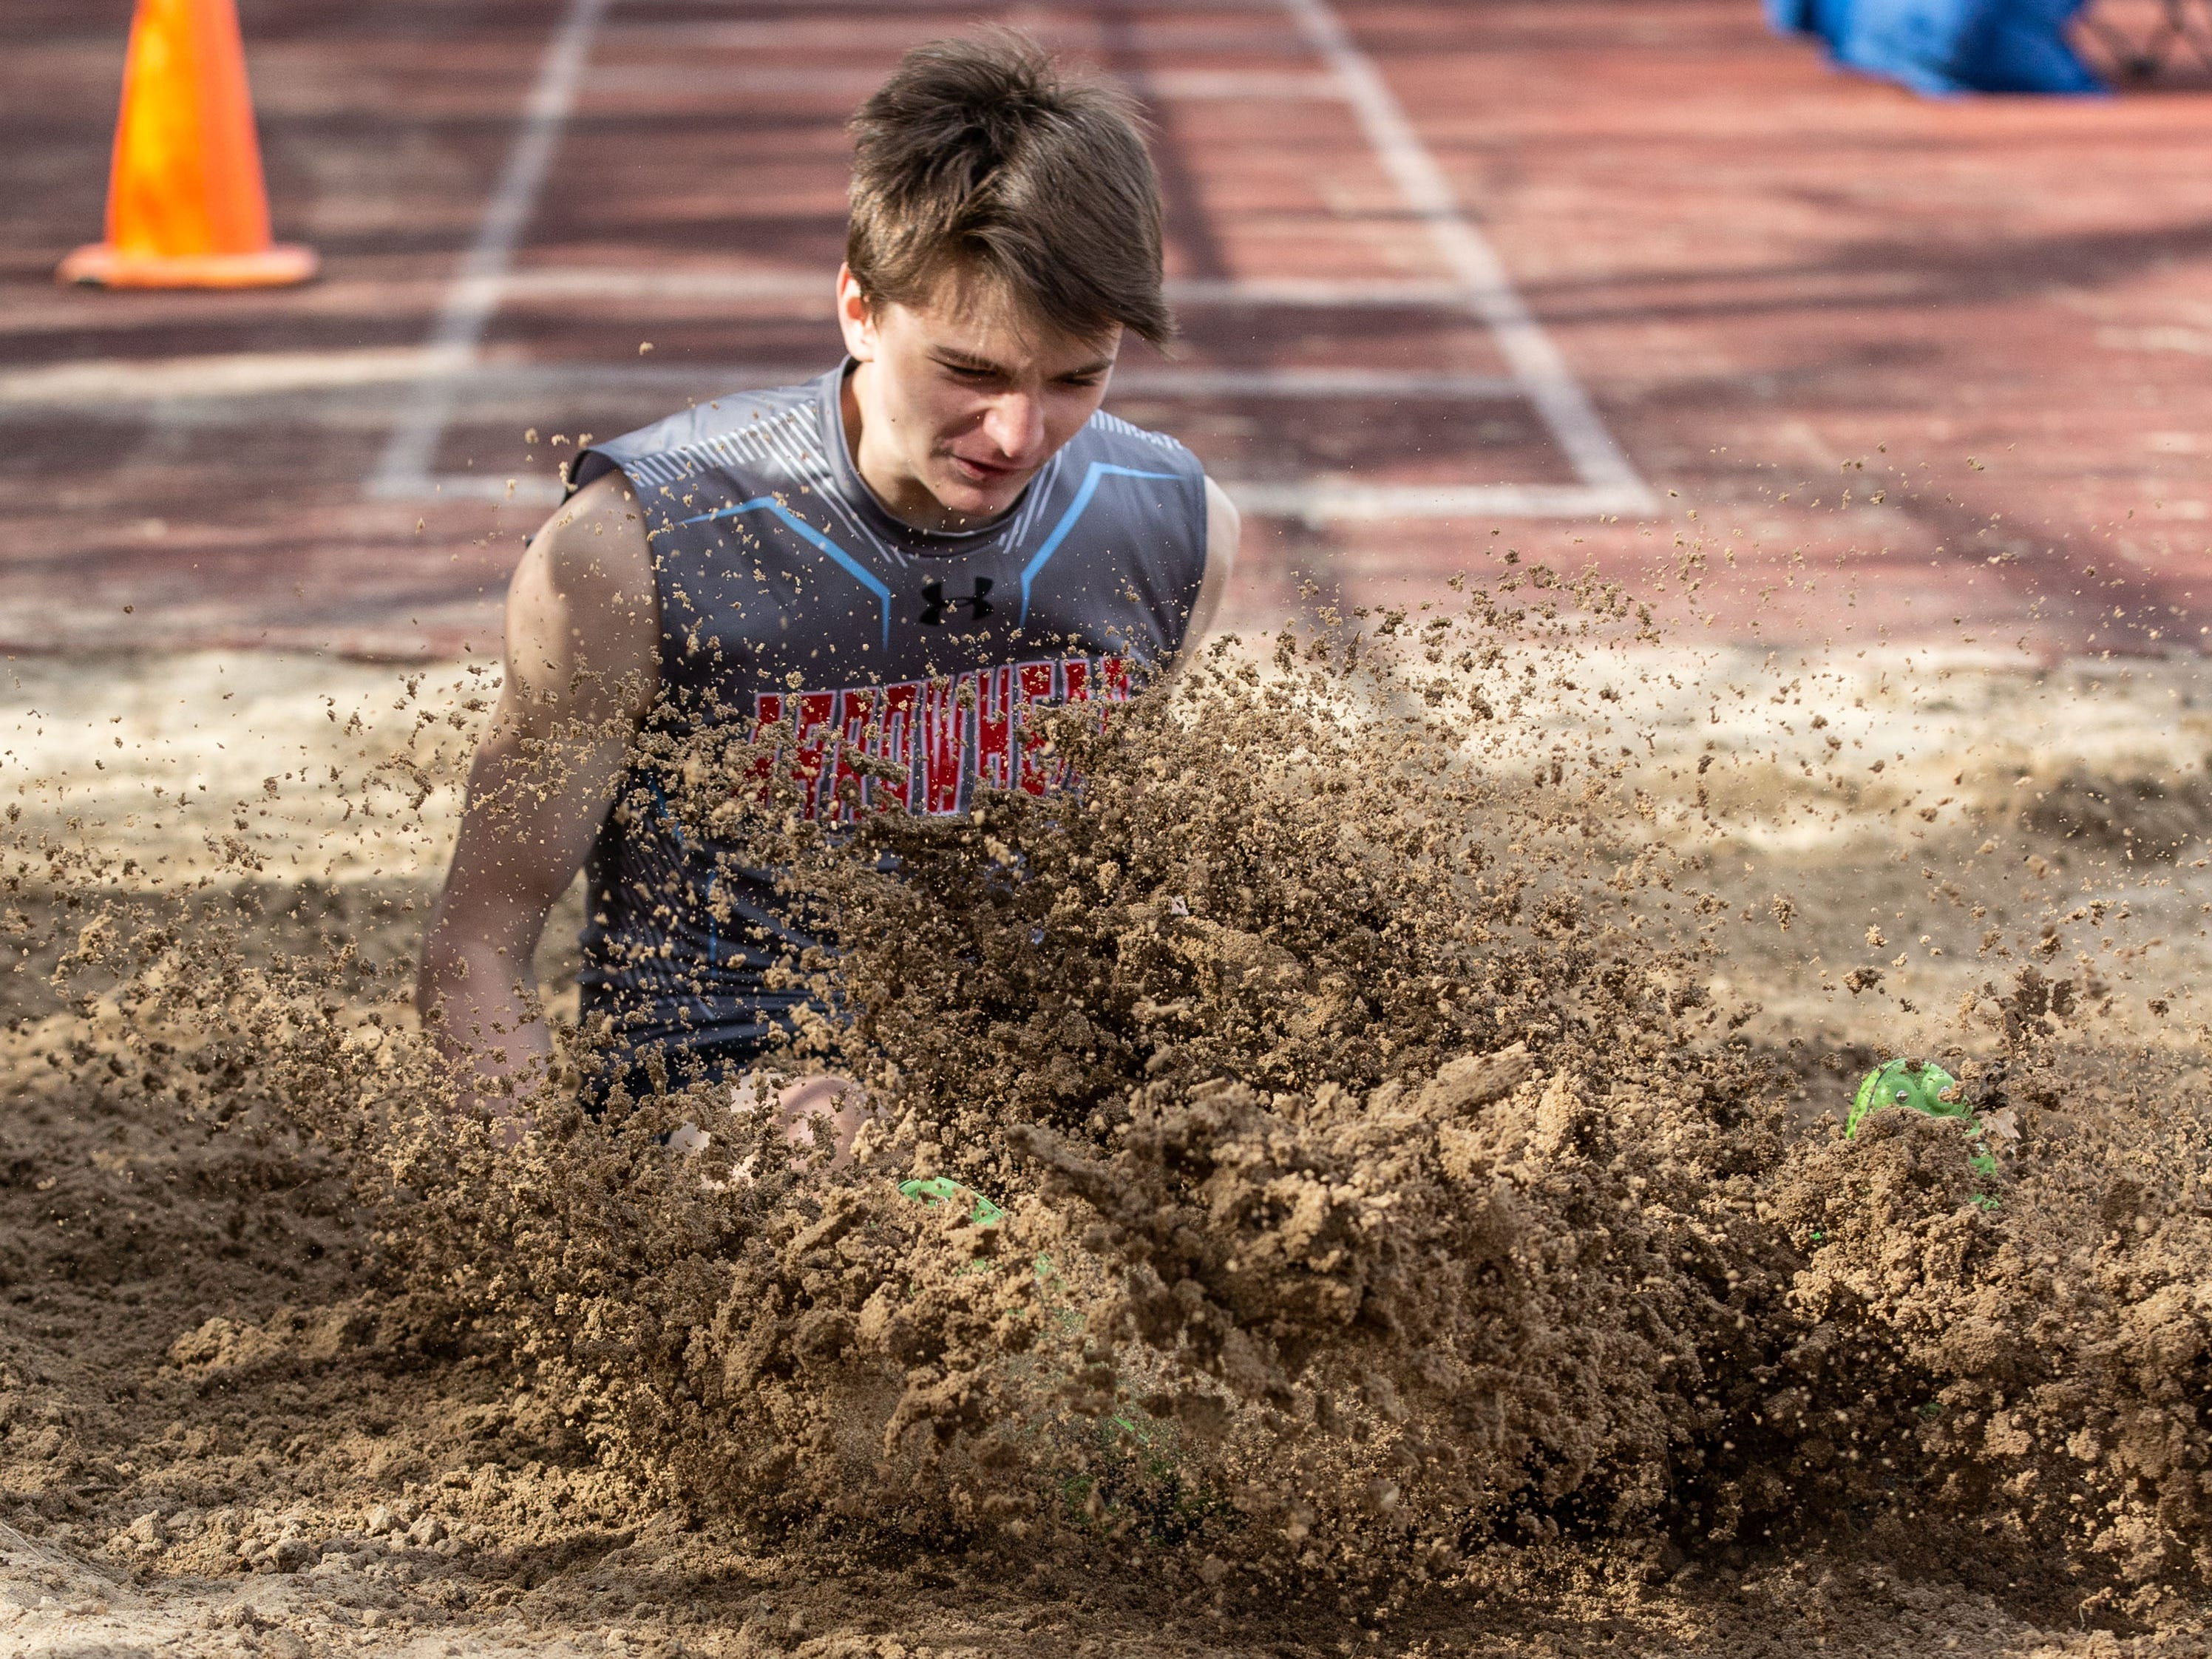 Arrowhead's Zack Graham competes in the long jump during the Mike Gain 50th Annual Spartan Invitational at Brookfield East on Tuesday, April 9, 2019.